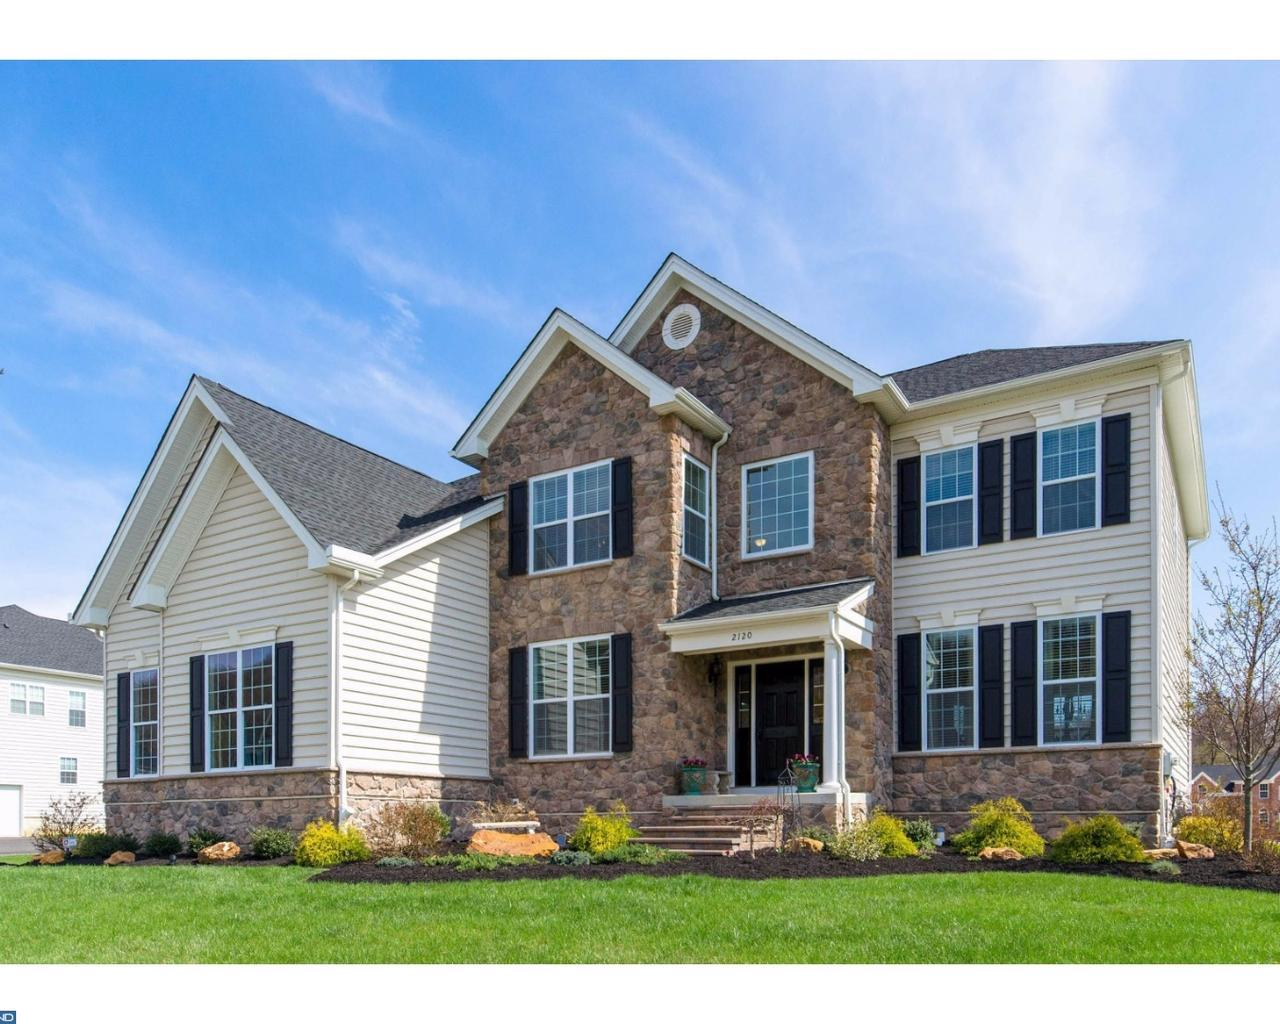 2120 Rainlilly Dr Center Valley Pa Mls 6968189